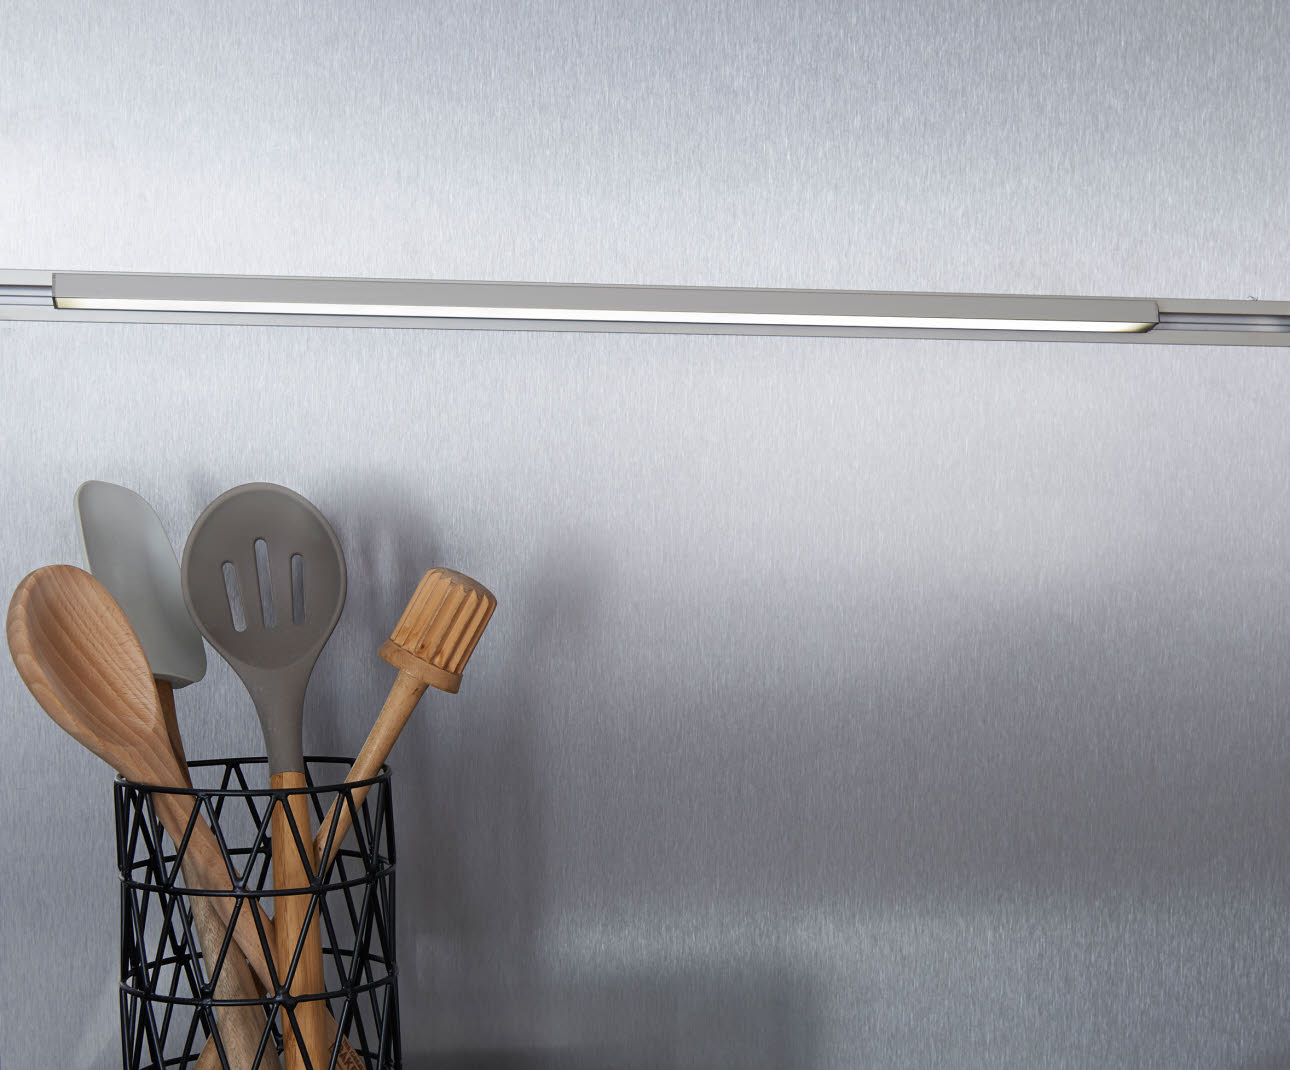 LED light profile - kitchen utensils